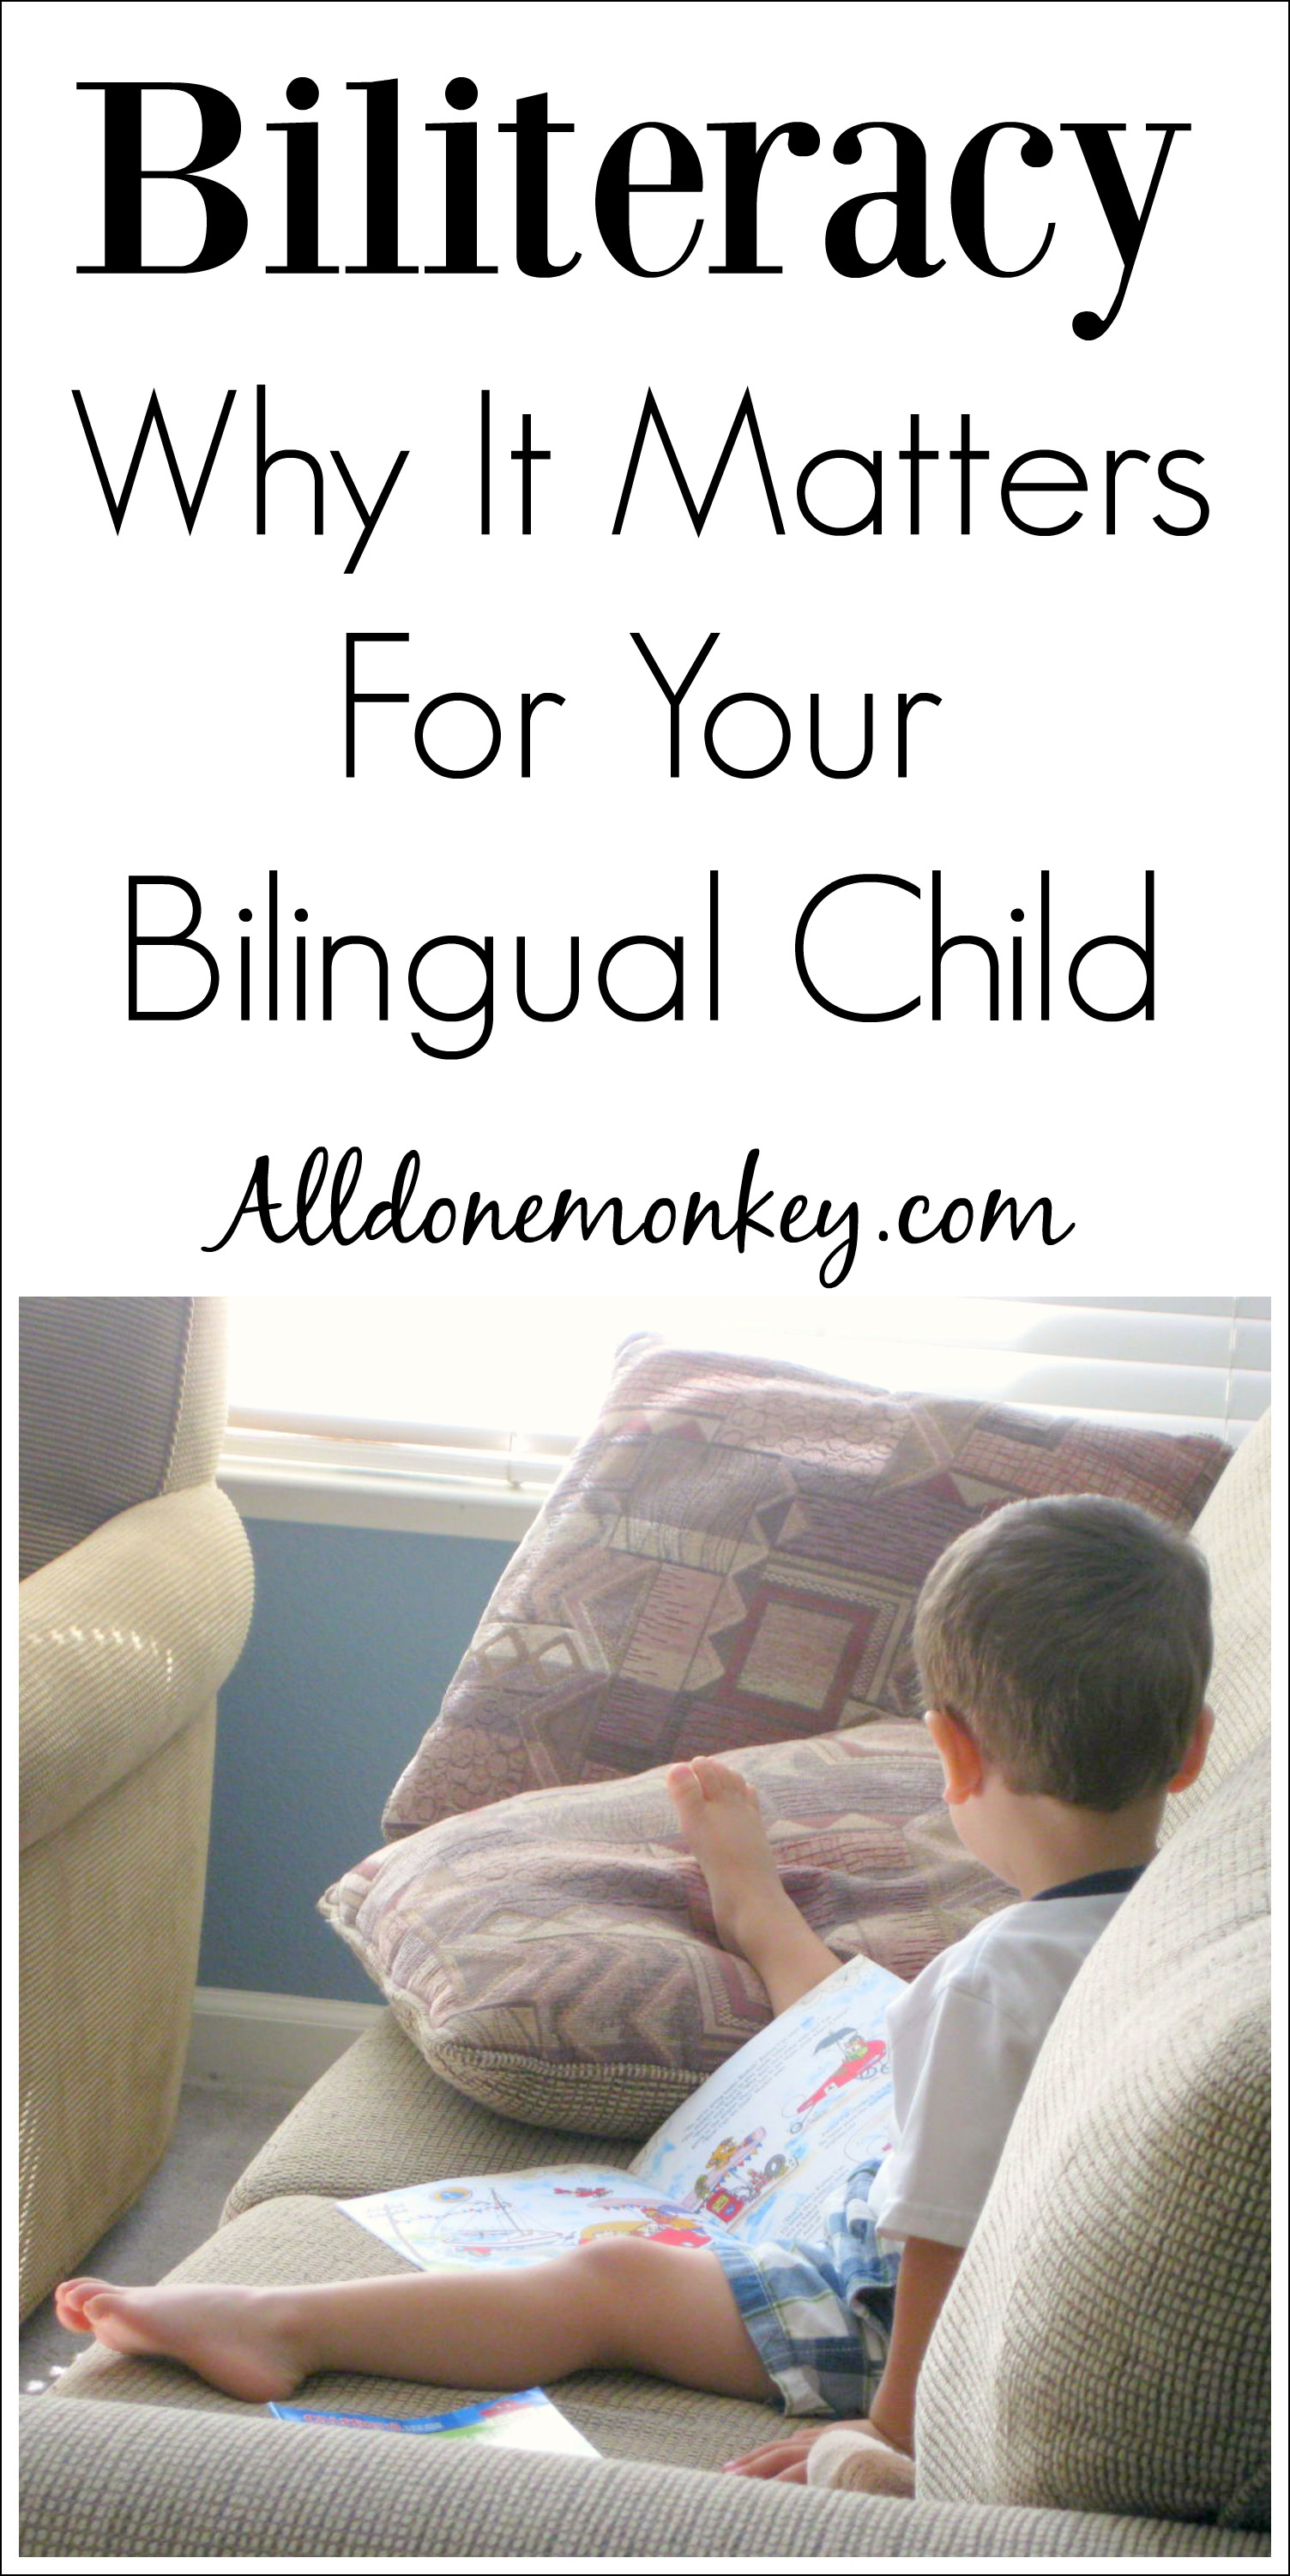 Biliteracy: Why It Matters for Your Bilingual Child | Alldonemonkey.com